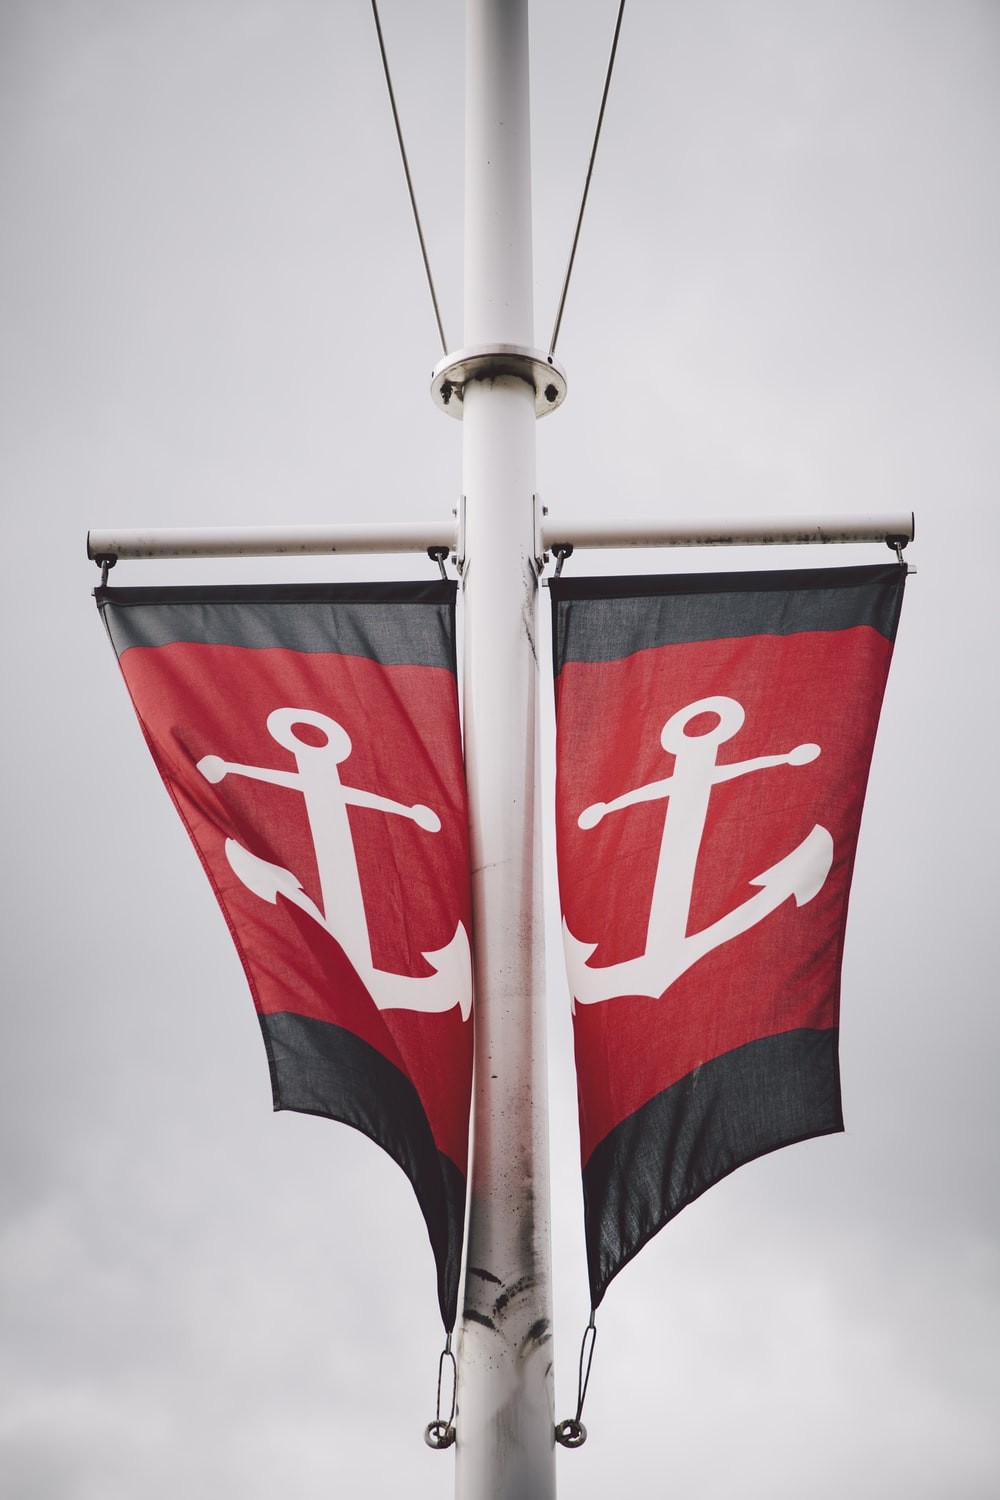 red and white anchor flags on ship